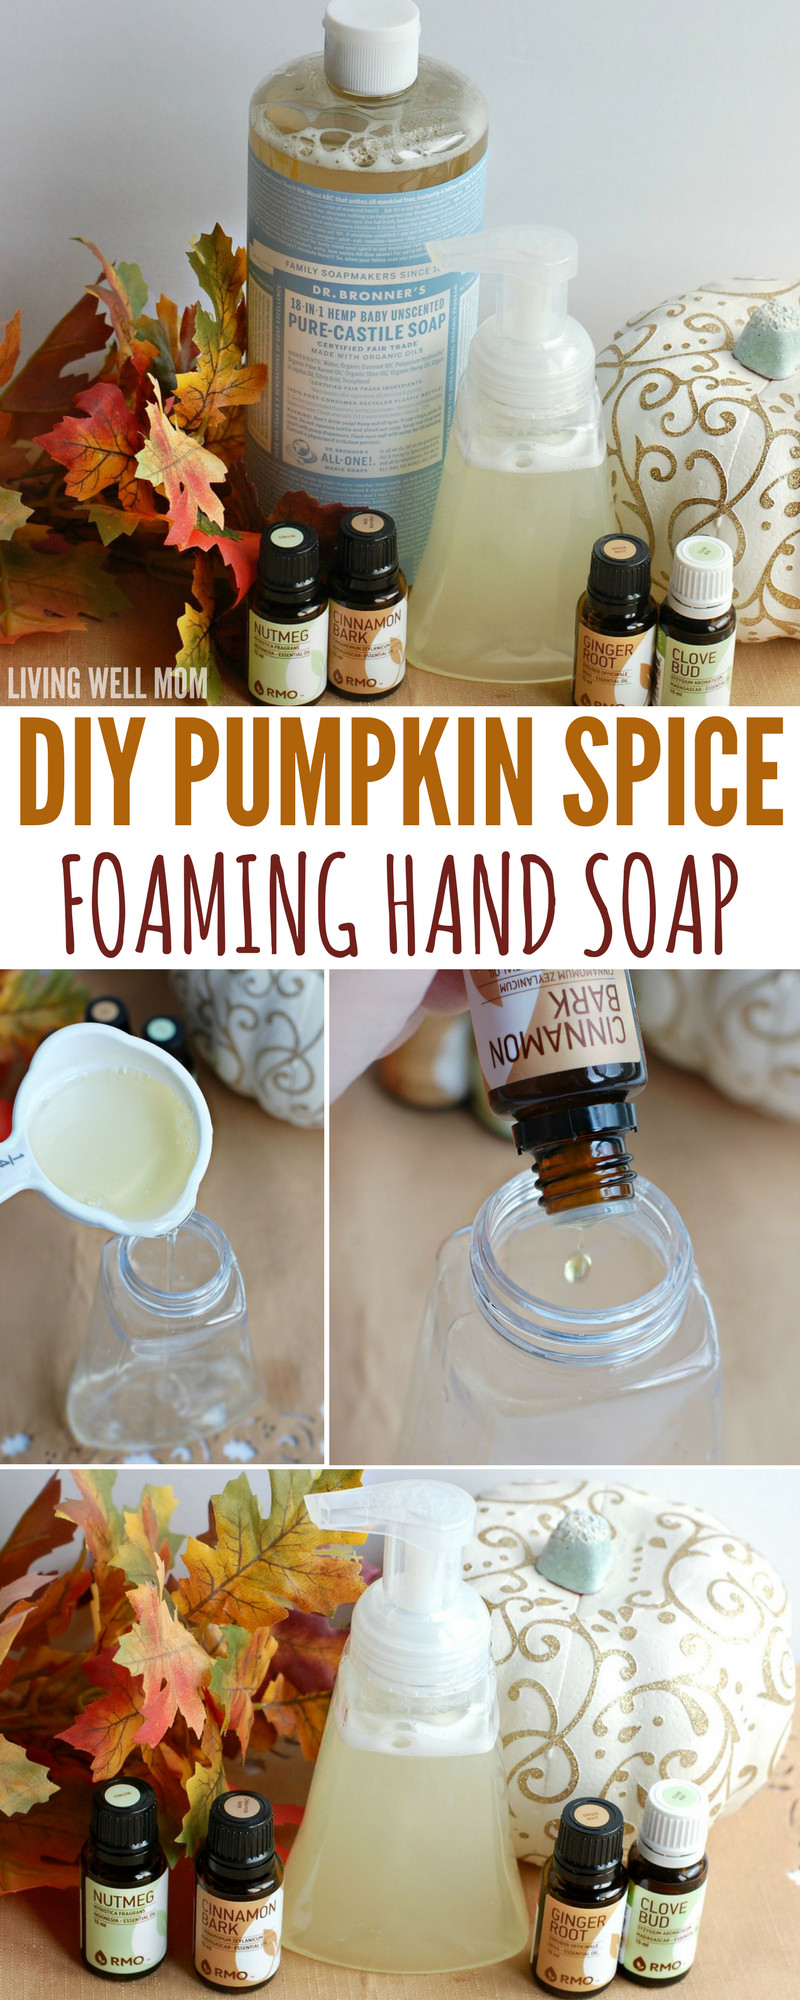 Best ideas about DIY Hand Soap . Save or Pin DIY Pumpkin Spice Foaming Hand Soap with Essential Oils Now.